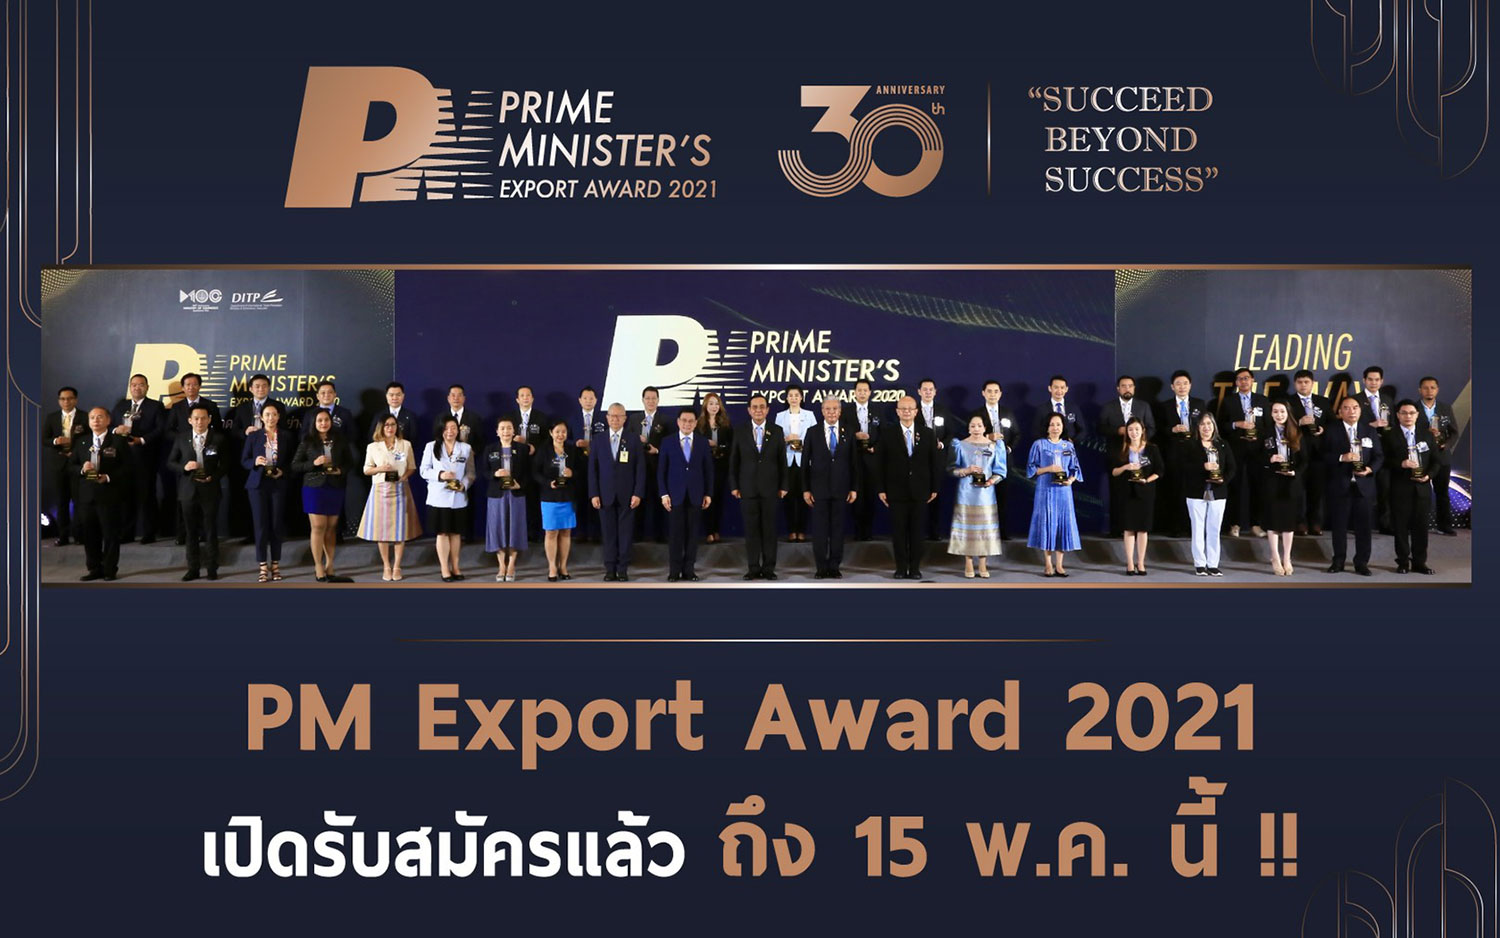 DITP champions Thai export entrepreneur performance during Covid-19 crisis